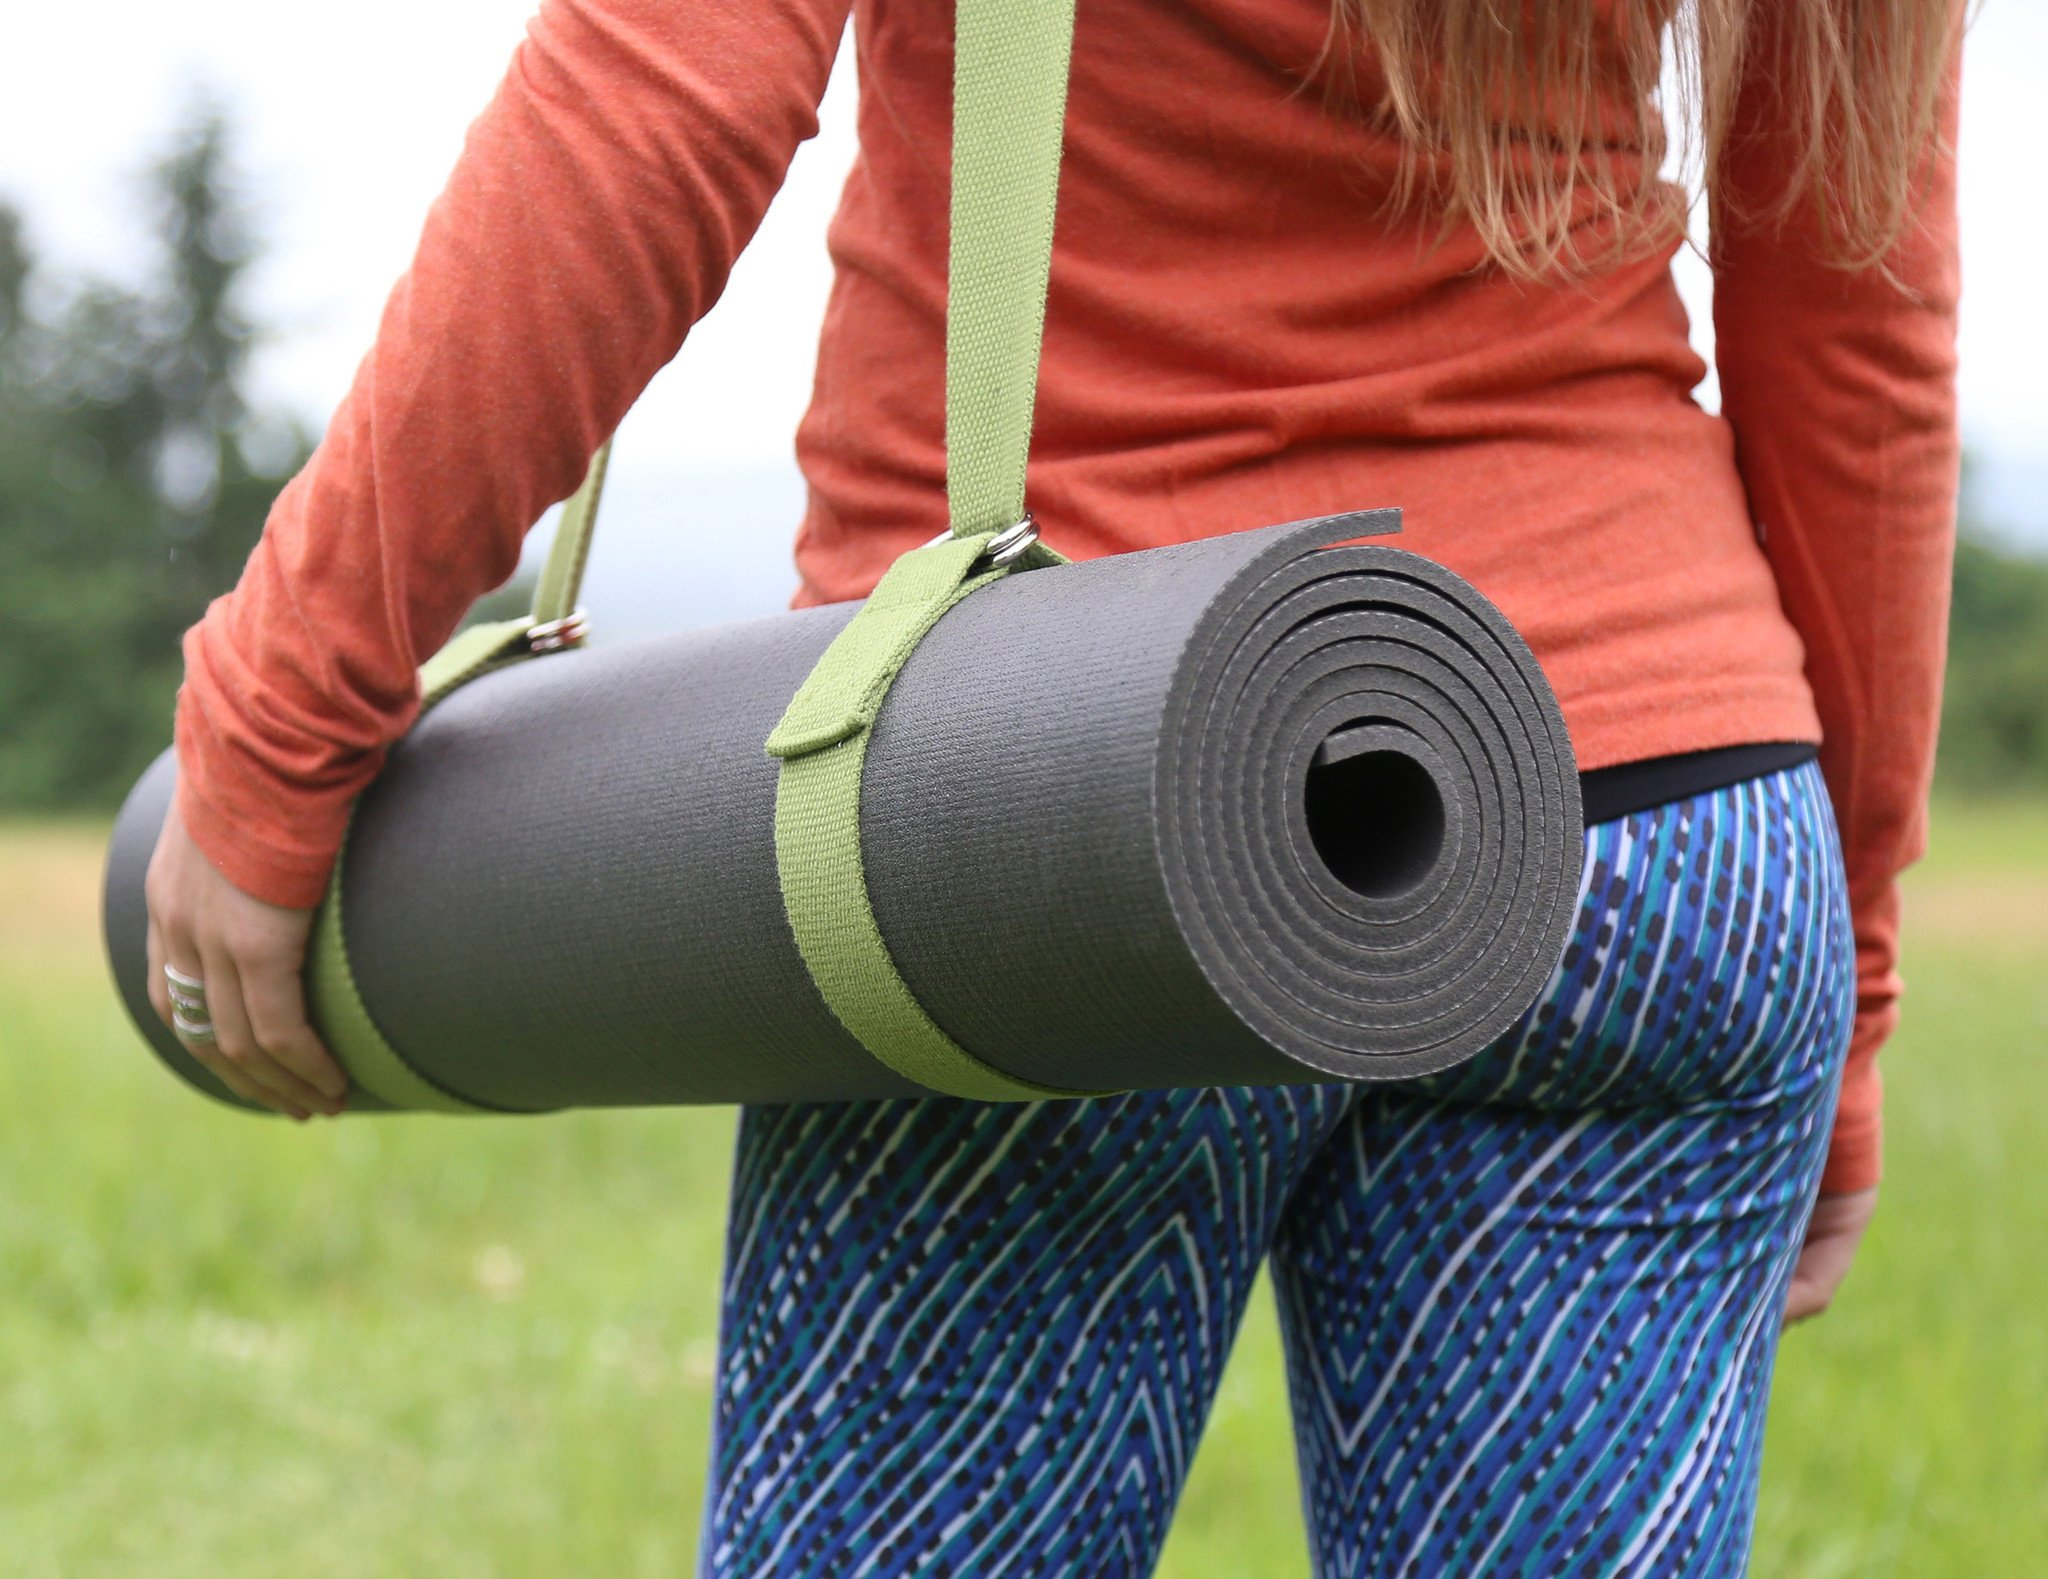 mat brands pro with usa d online mats strap j for carrying detail cost product yoga buy cheap